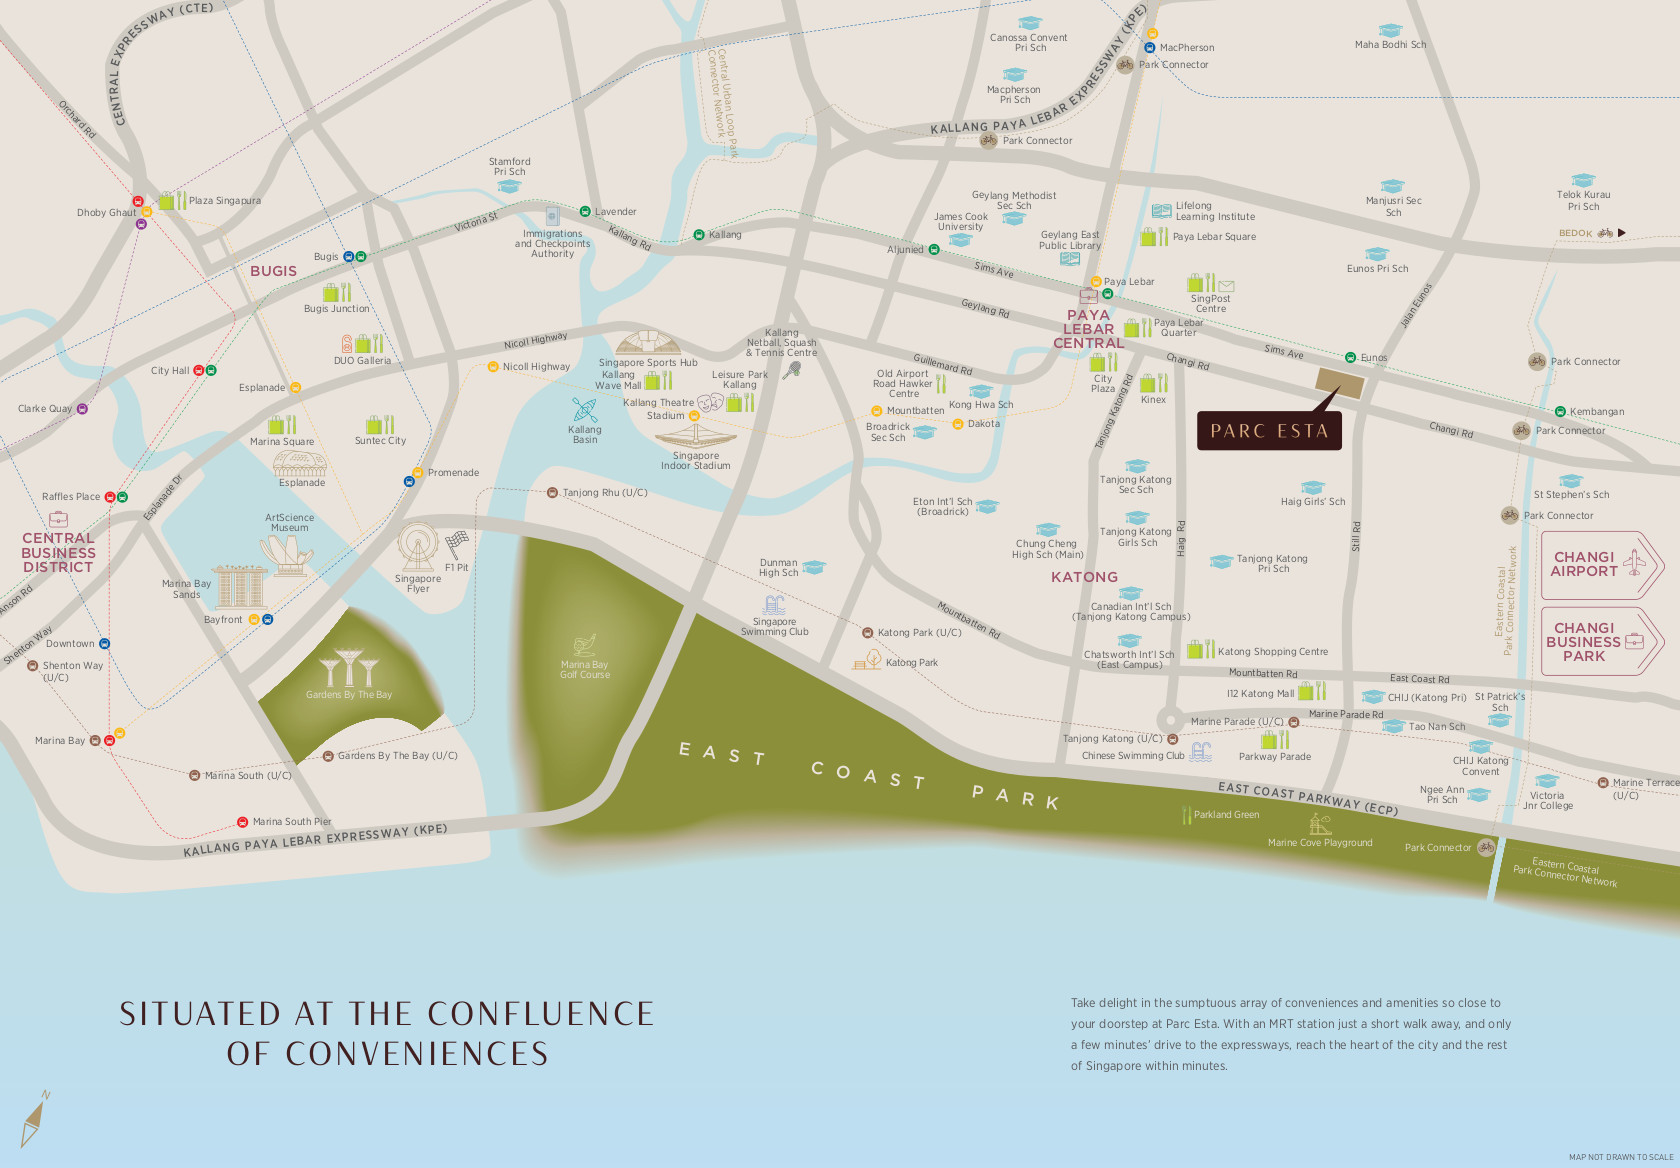 Parc Esta Location Plan